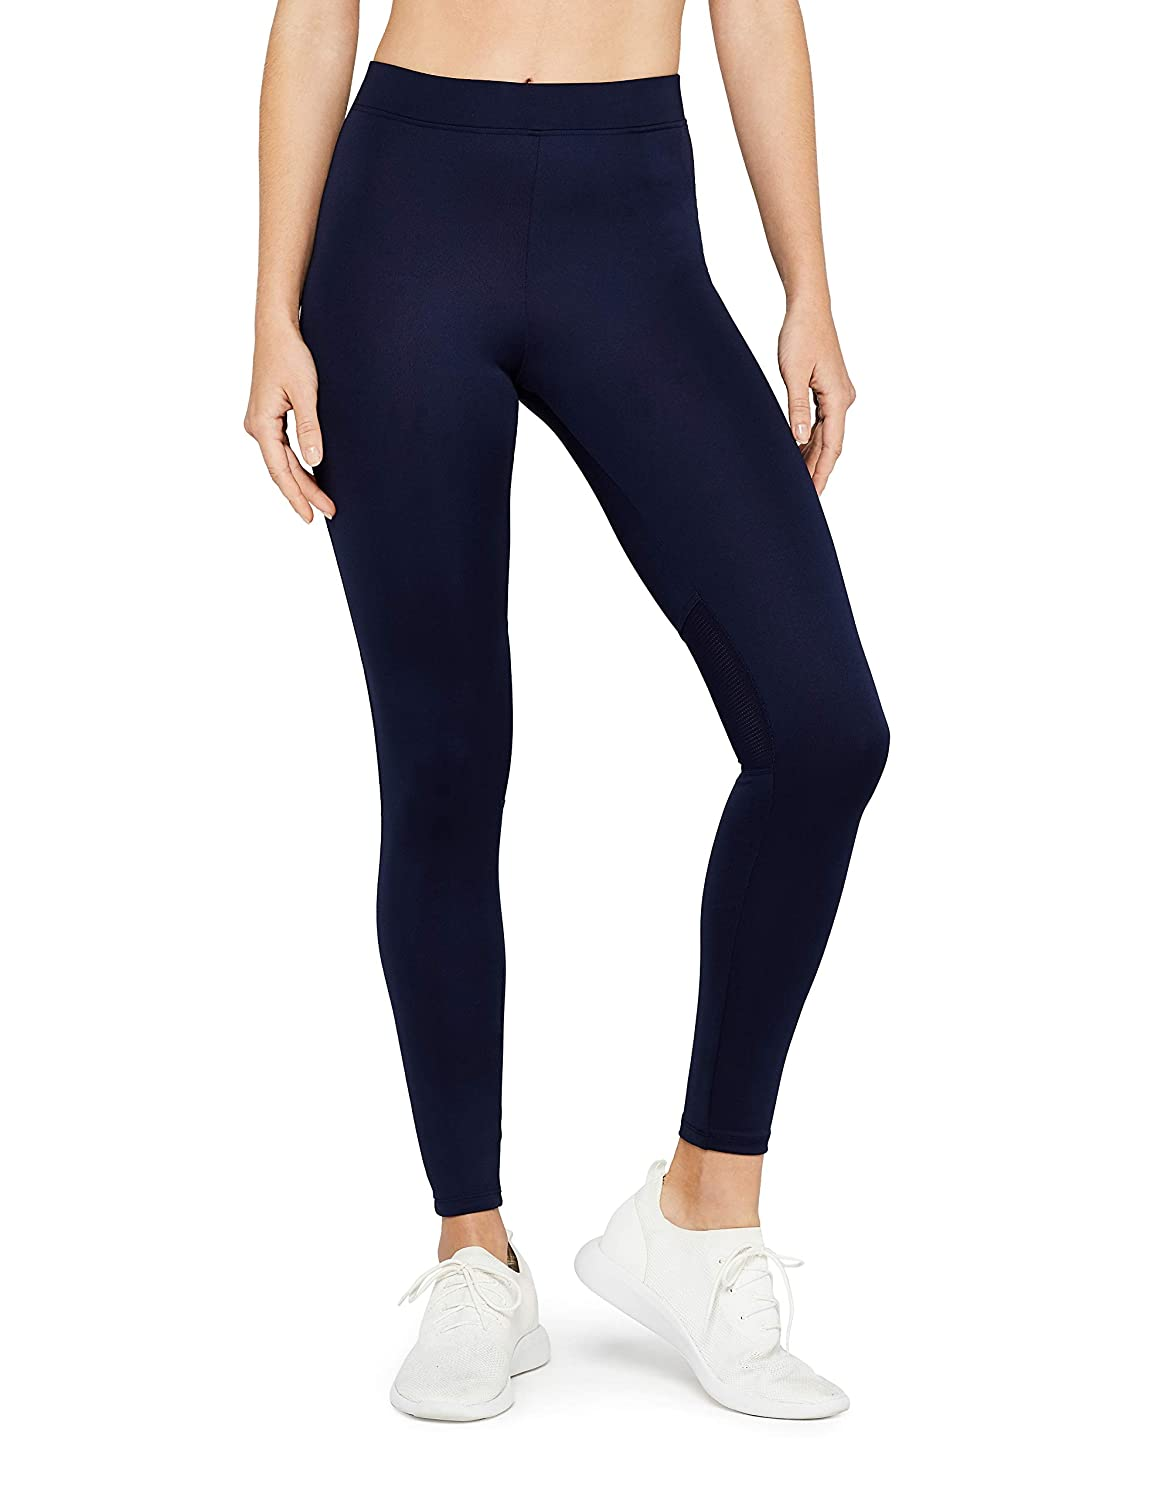 Marchio Amazon - AURIQUE Leggings Sportivi Donna